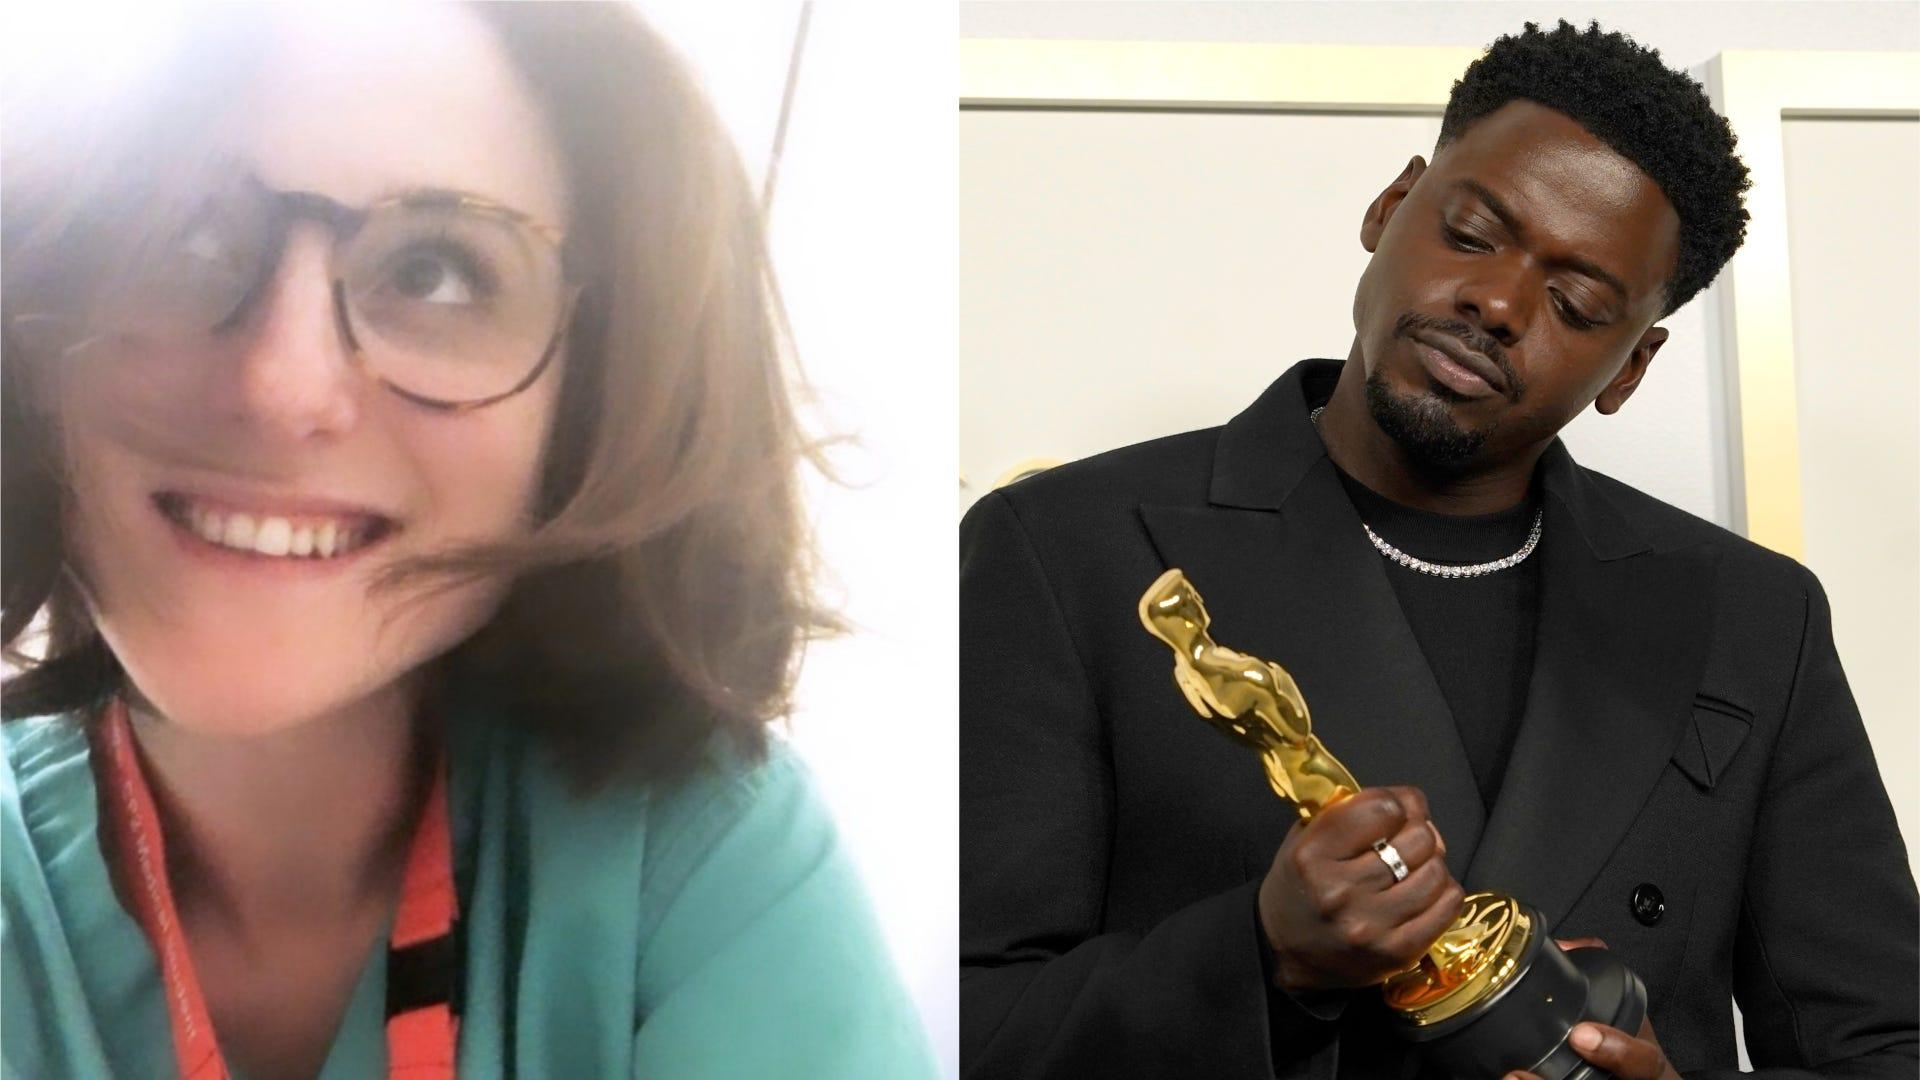 Ex-castmate recalls Daniel Kaluuya's 'magnetic' ability in early career